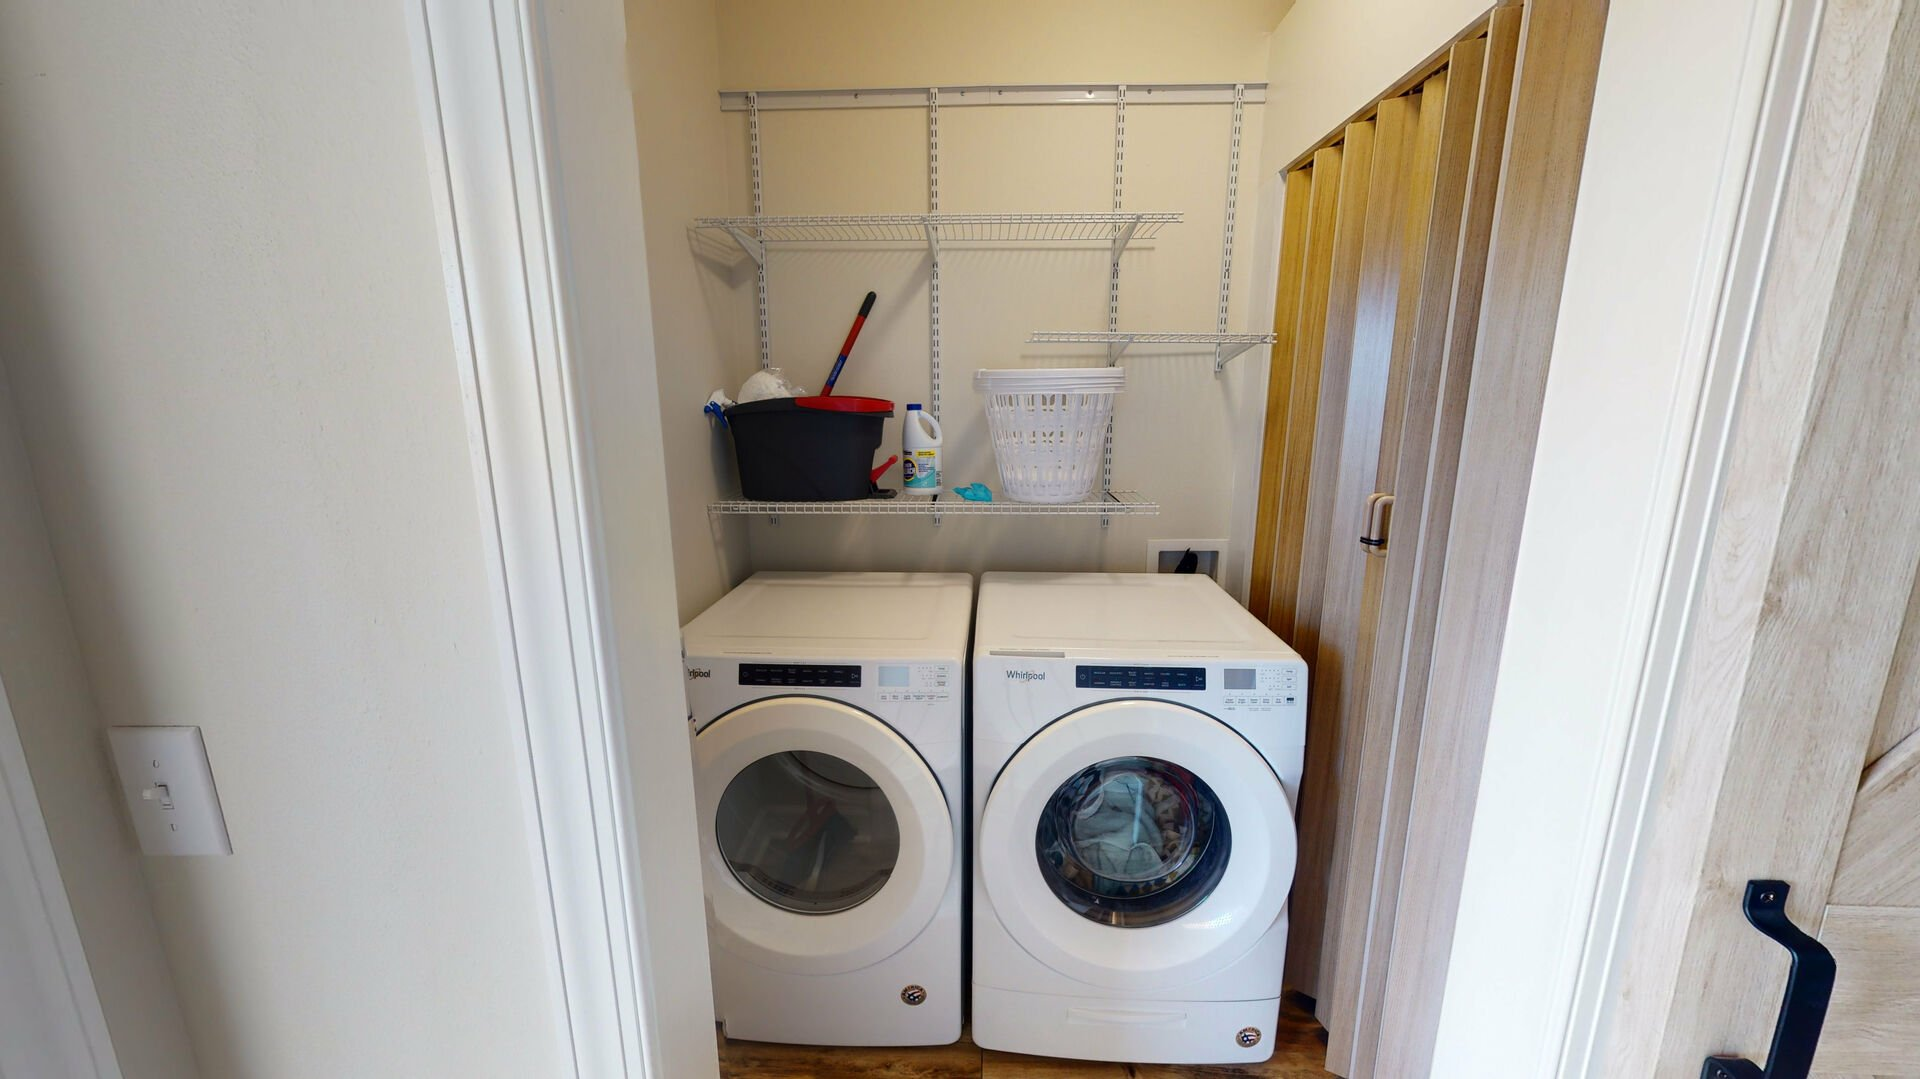 Washer and dryer on the main level of the home